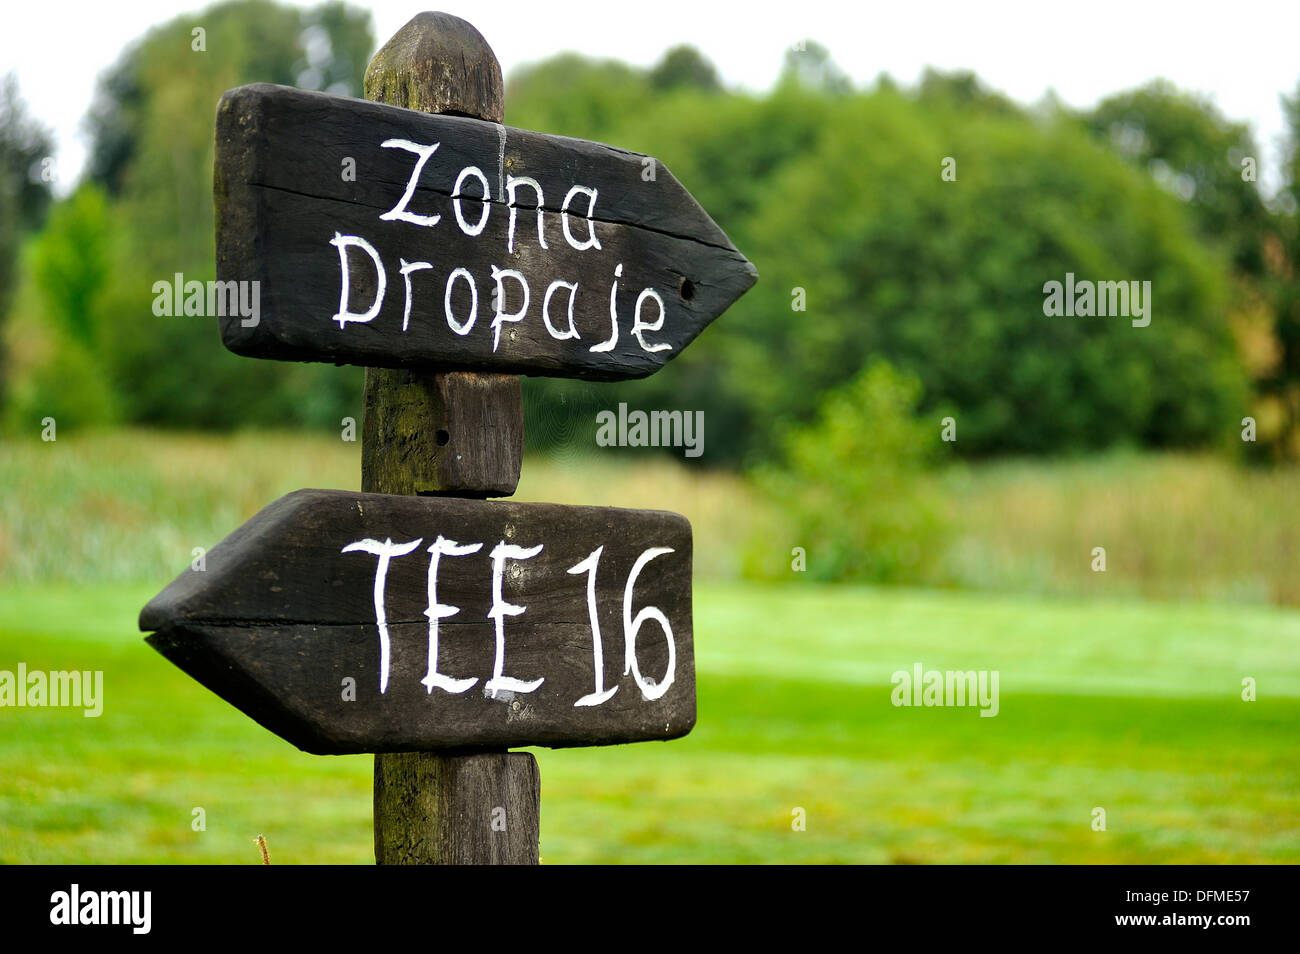 landscape image indicators at Tee 16 and dropping zone on the golf Larrabea in Alava, Basque Country, Spain - Stock Image